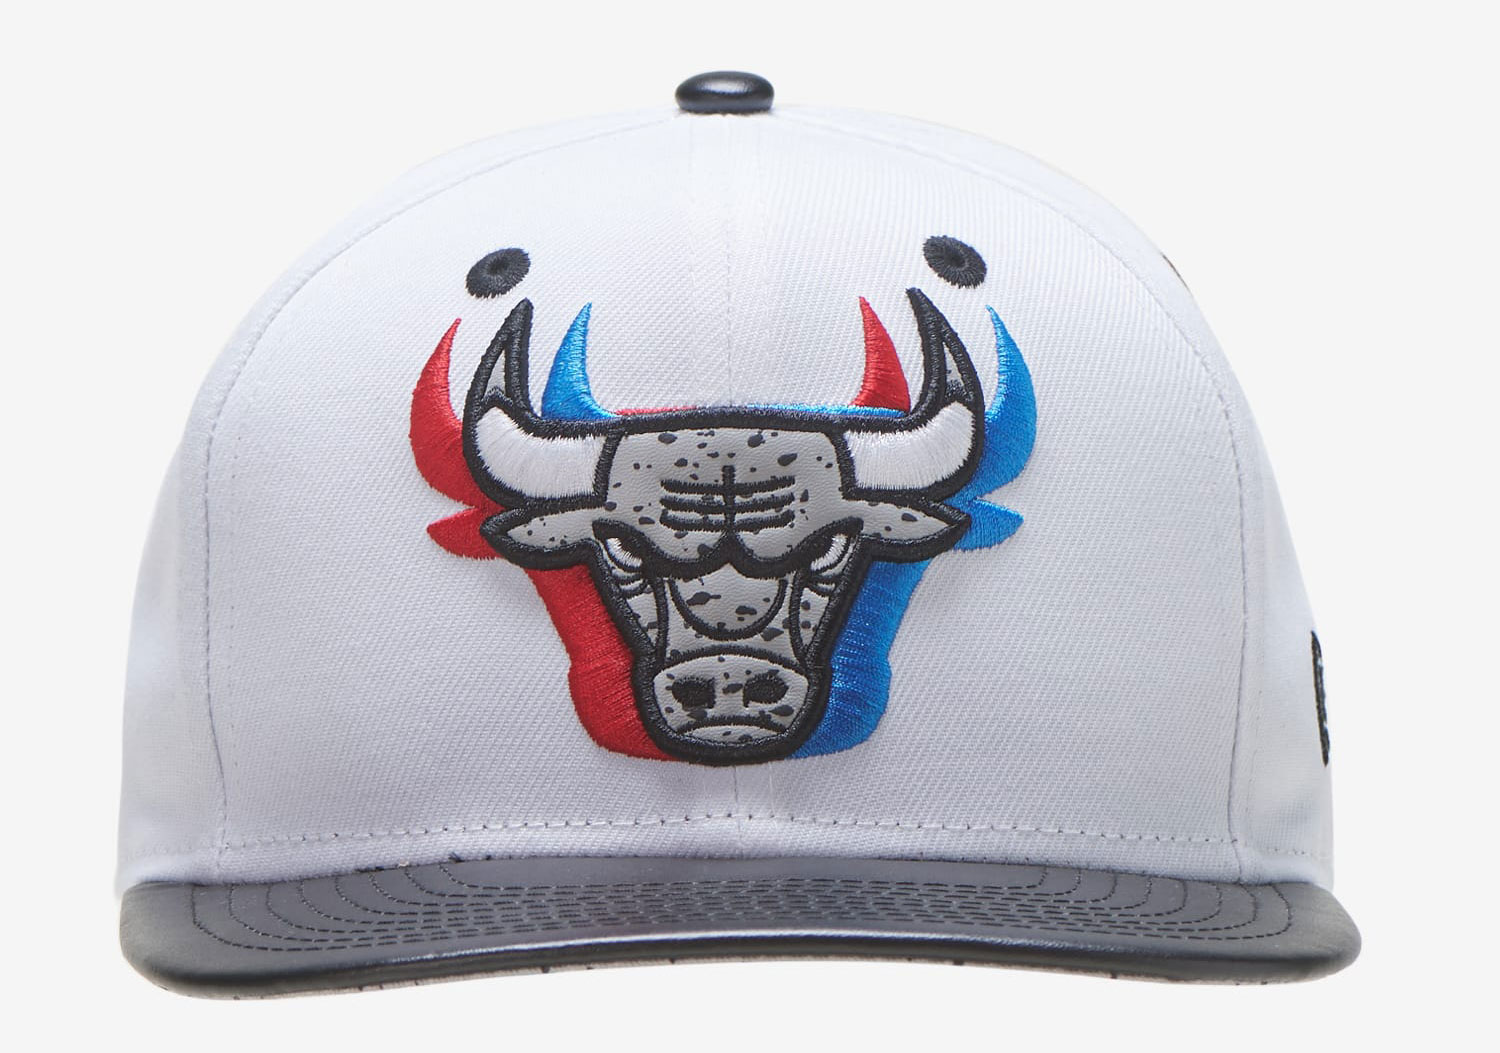 new-era-what-the-bulls-snapback-hat-1